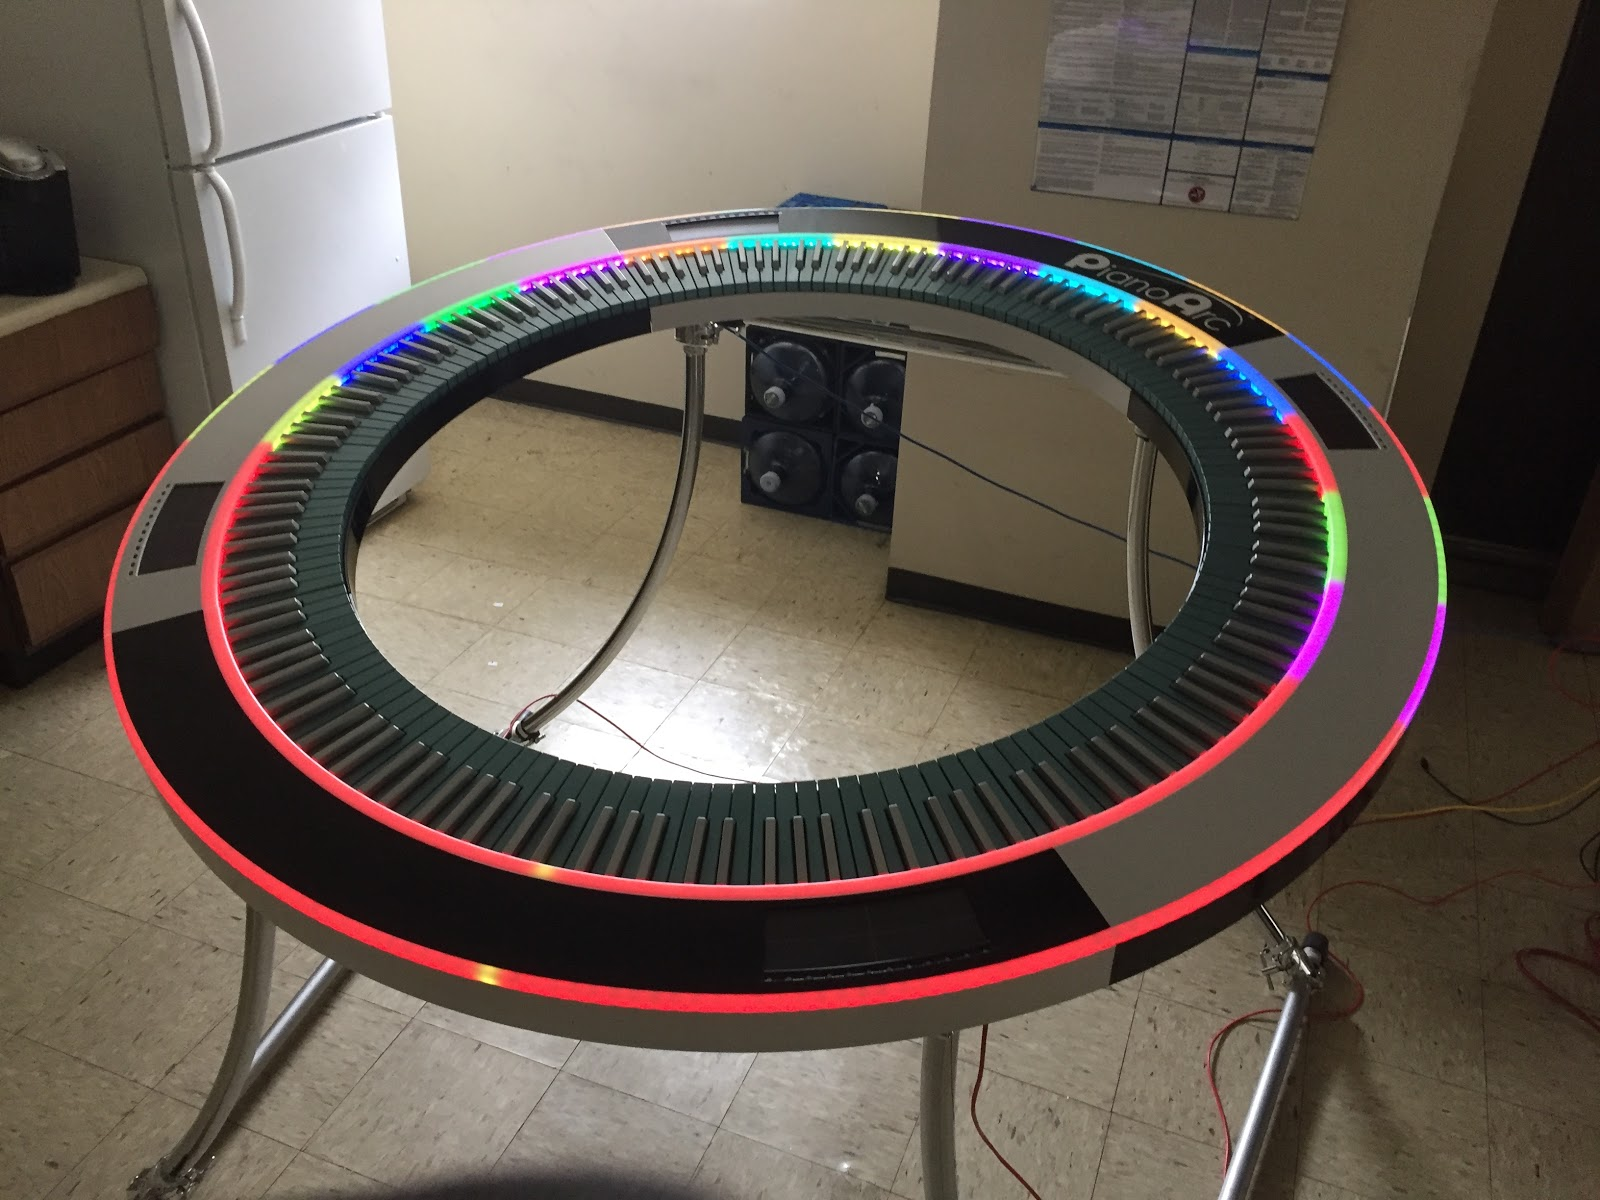 Pianoarc with neon light set